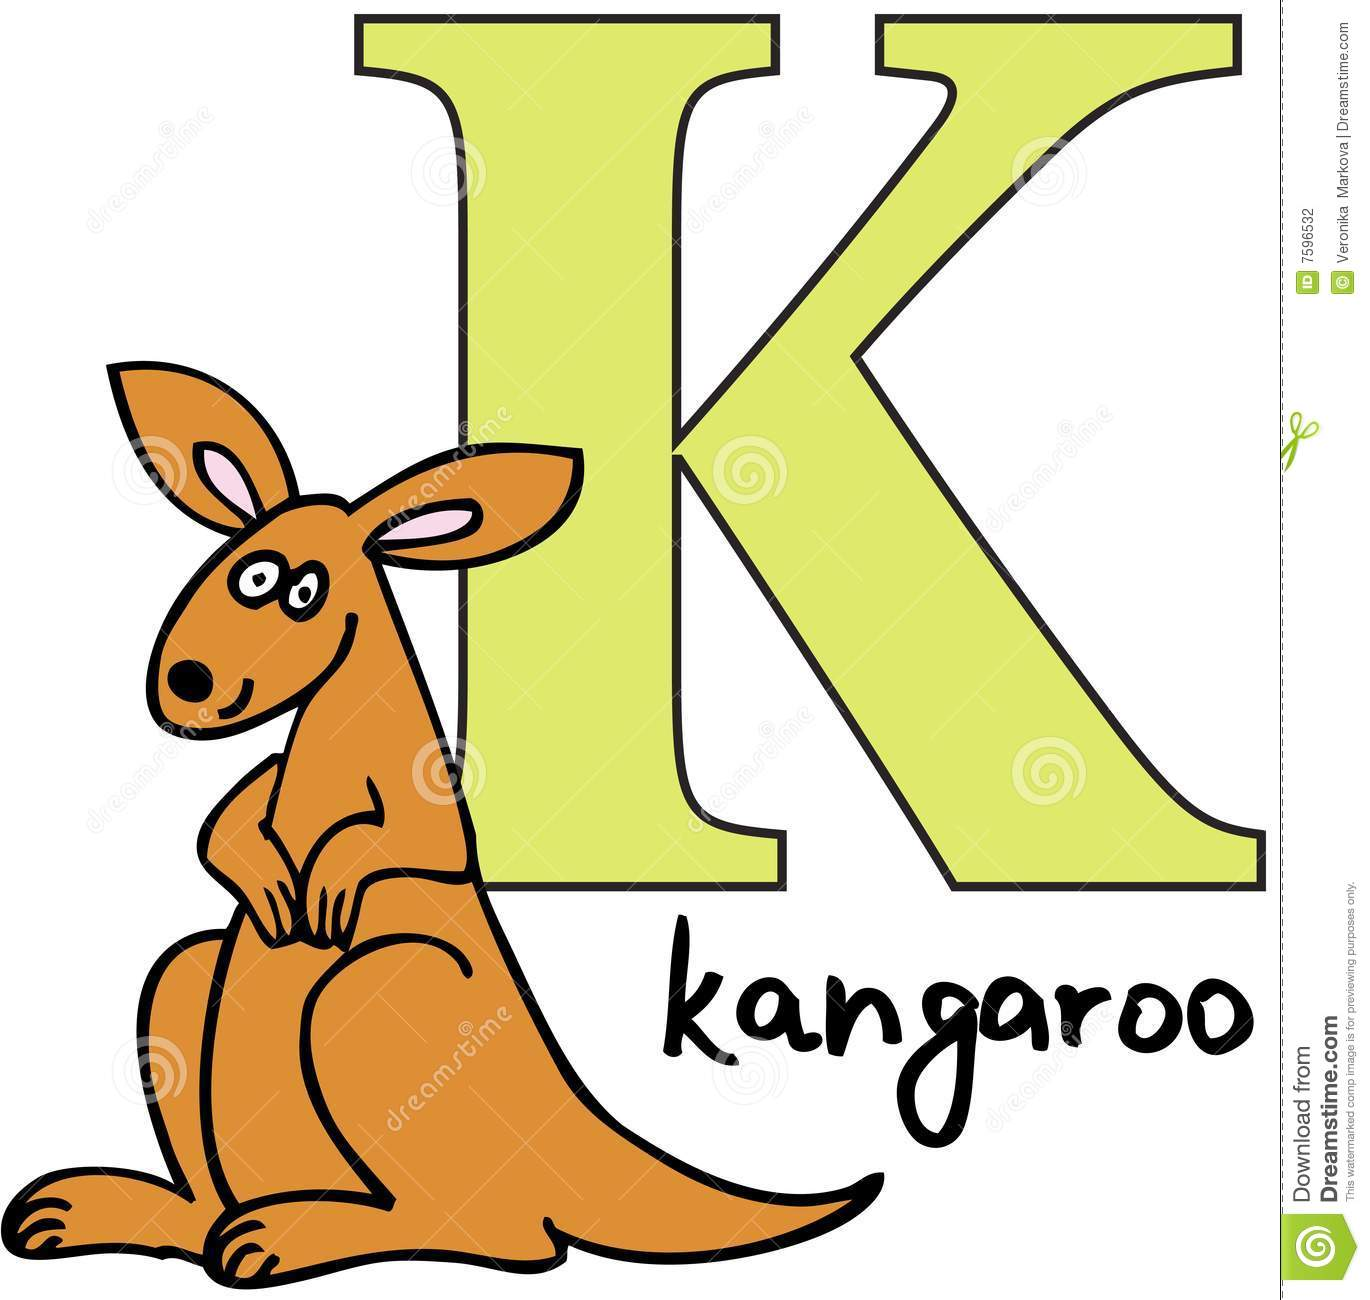 animal alphabet k kangaroo